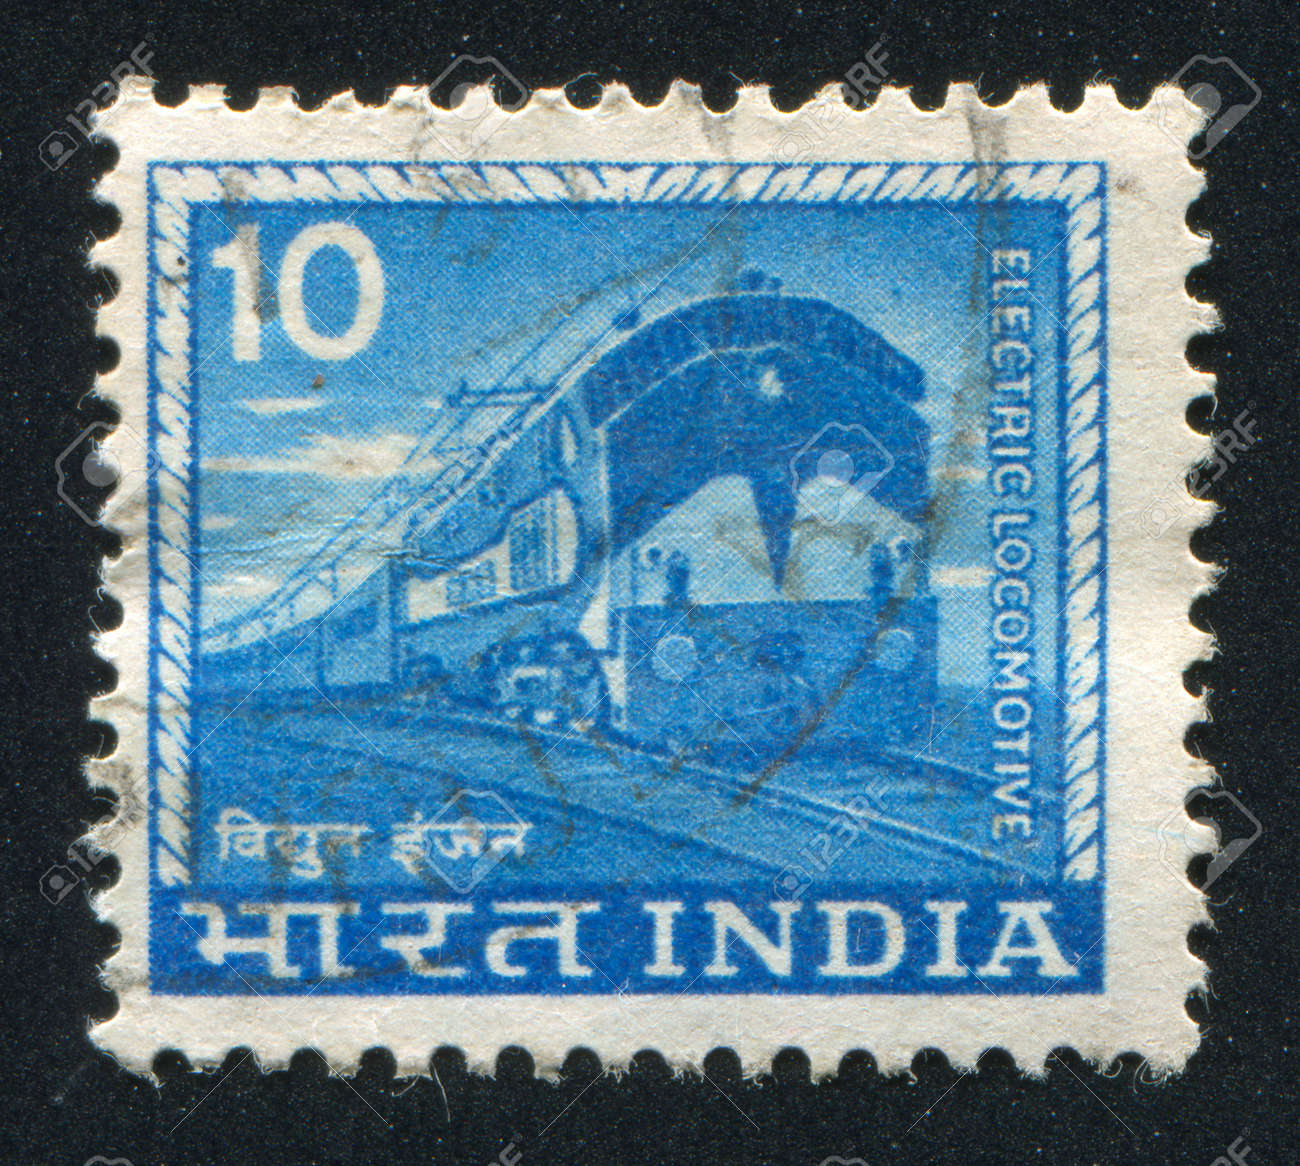 INDIA - CIRCA 1965: stamp printed by India, shows Electric locomotive, circa 1965 Stock Photo - 17145373